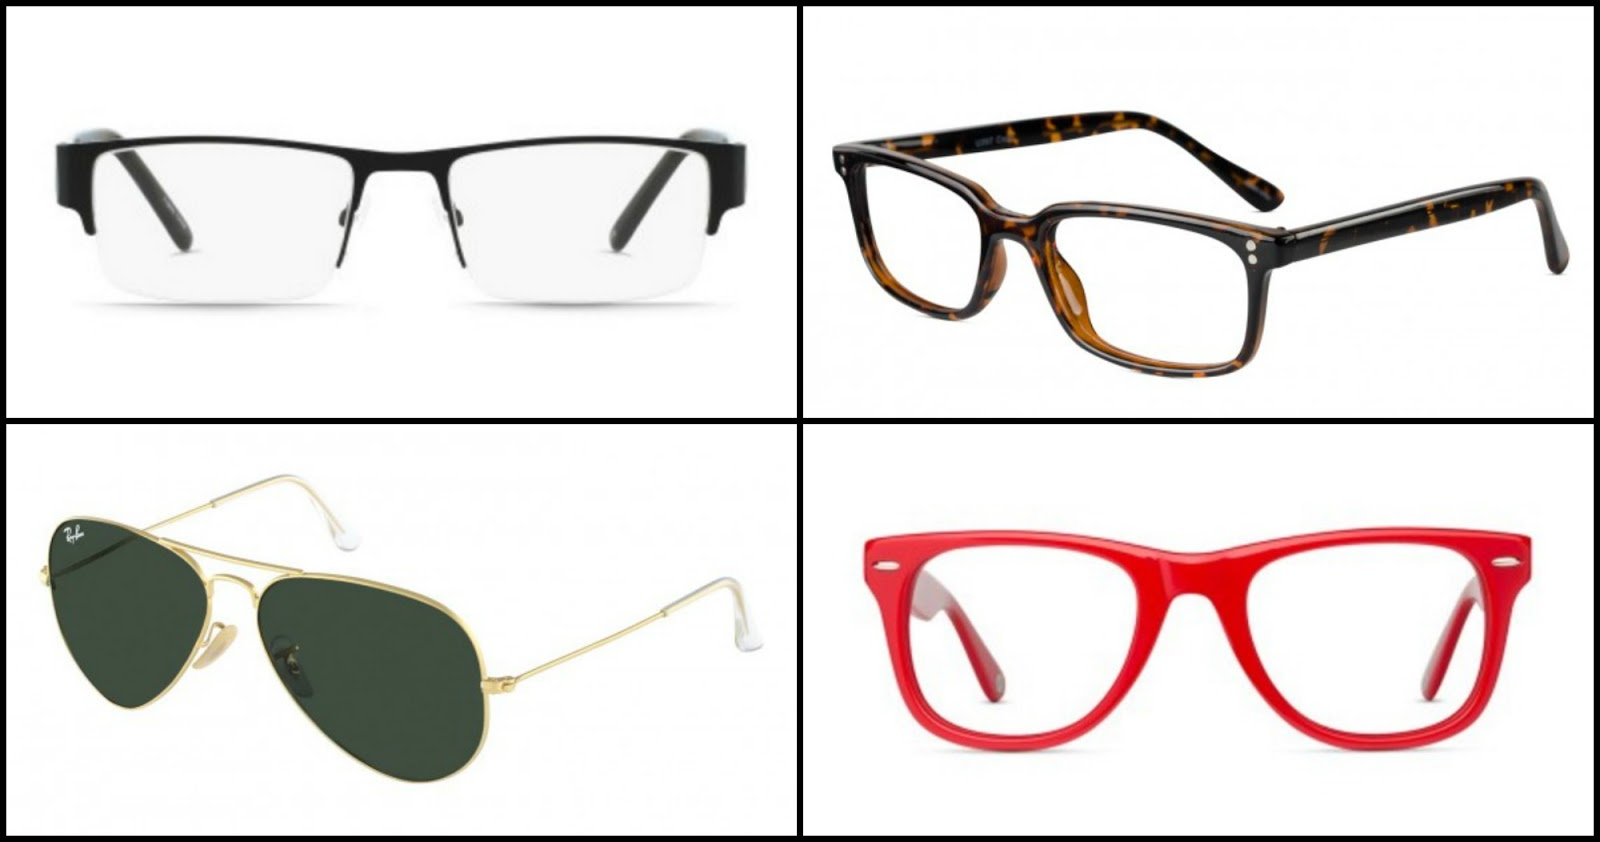 online optical c6di  Launched in 2008, GlassesUSAcom is an online optical store run by a  dedicated team of optical experts, craftsmen, and production workers that  provides a